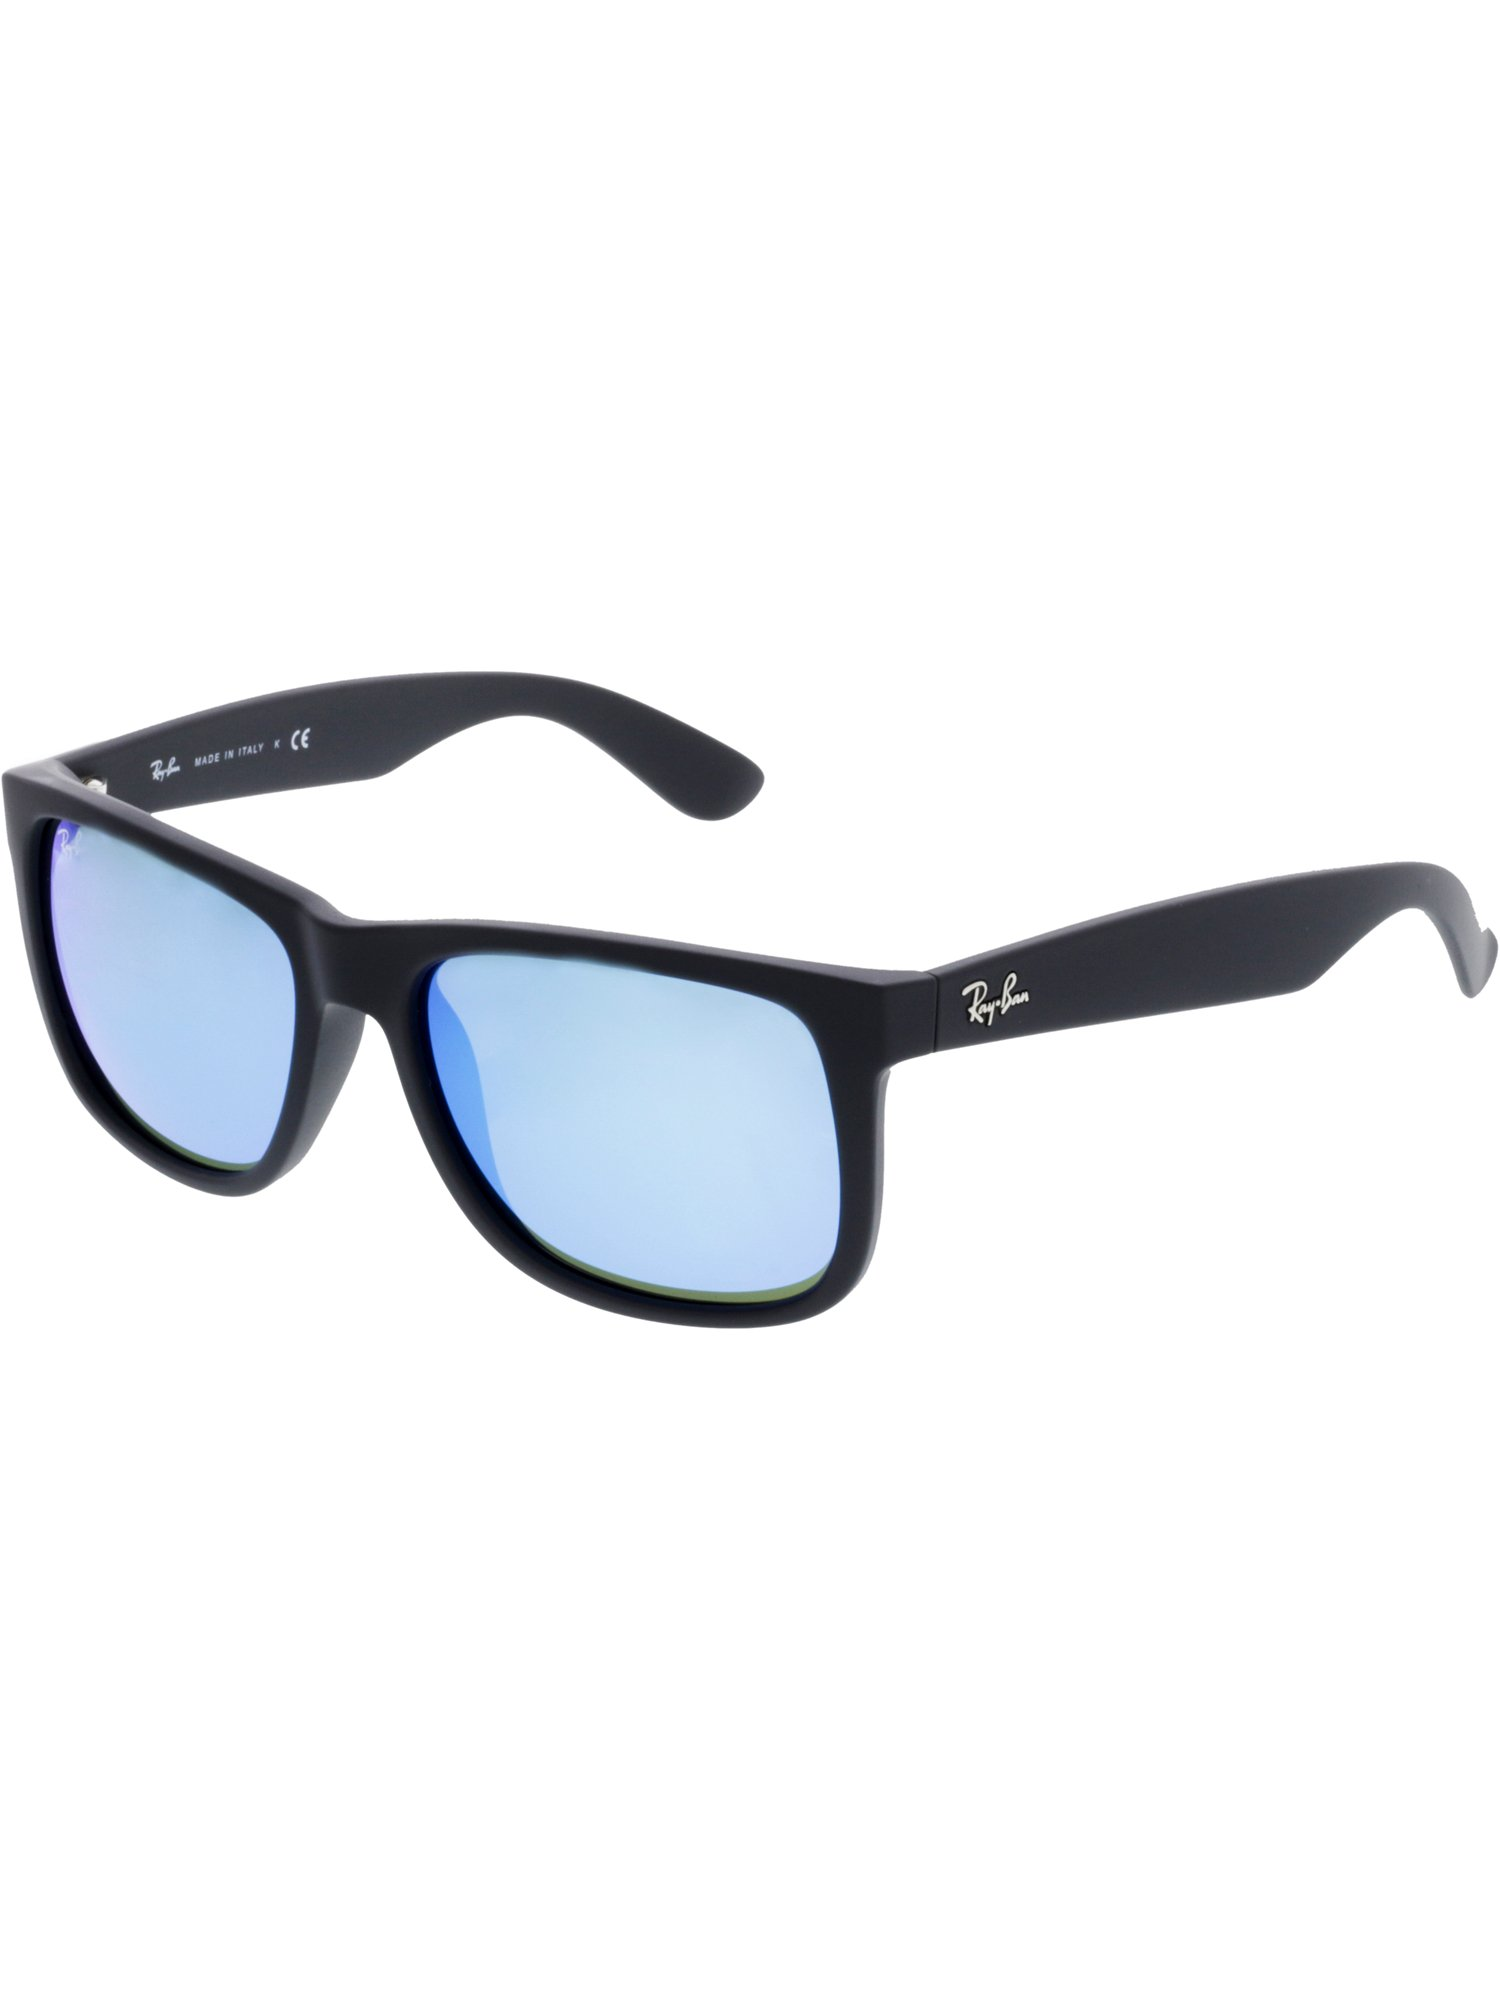 13db28de5f Ray-Ban Mirrored Justin RB4165-622 55-54 Black Rectangle ...